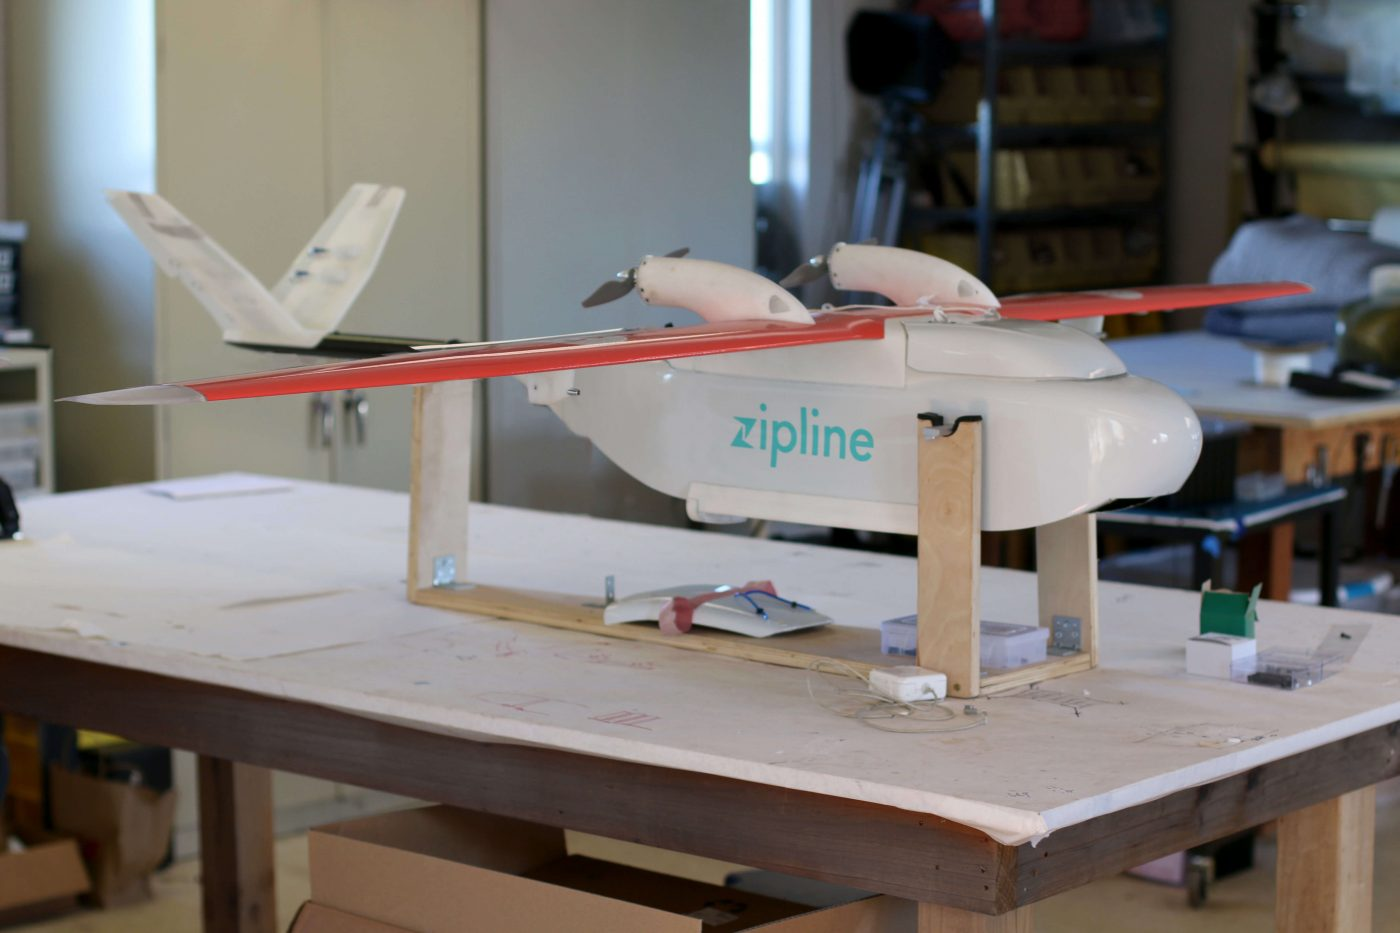 drone from Zipline designed to drop medical supplies